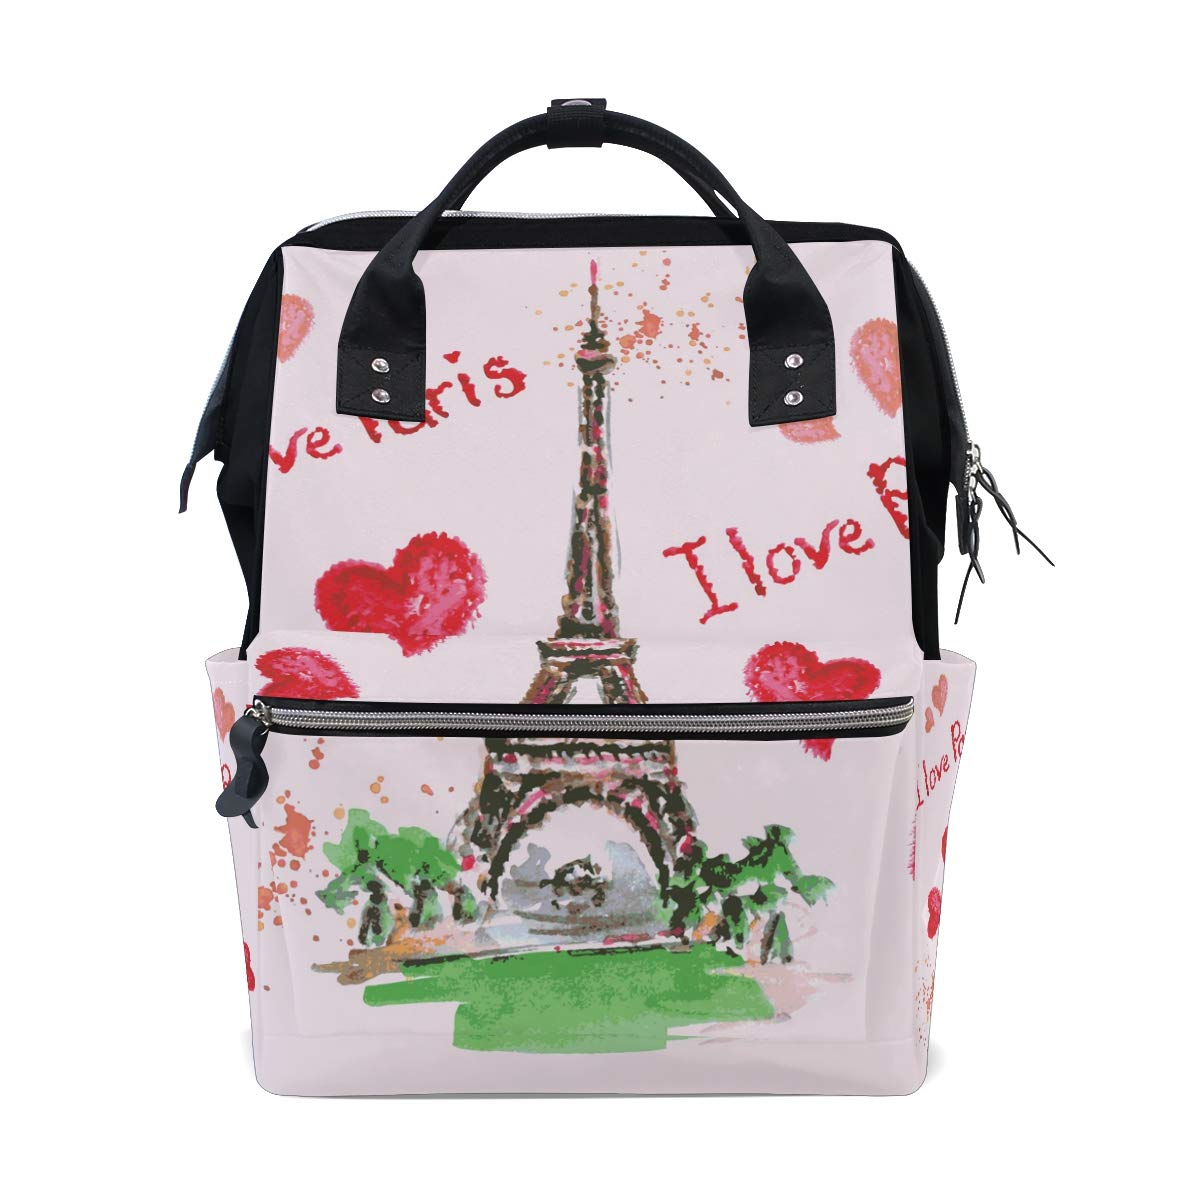 MERRYSUGAR Diaper Bag Backpack Travel Bag Large Multifunction Waterproof Cute Heart Paris Eiffel Tower Stylish and Durable Nappy Bag for Baby Care School Backpack